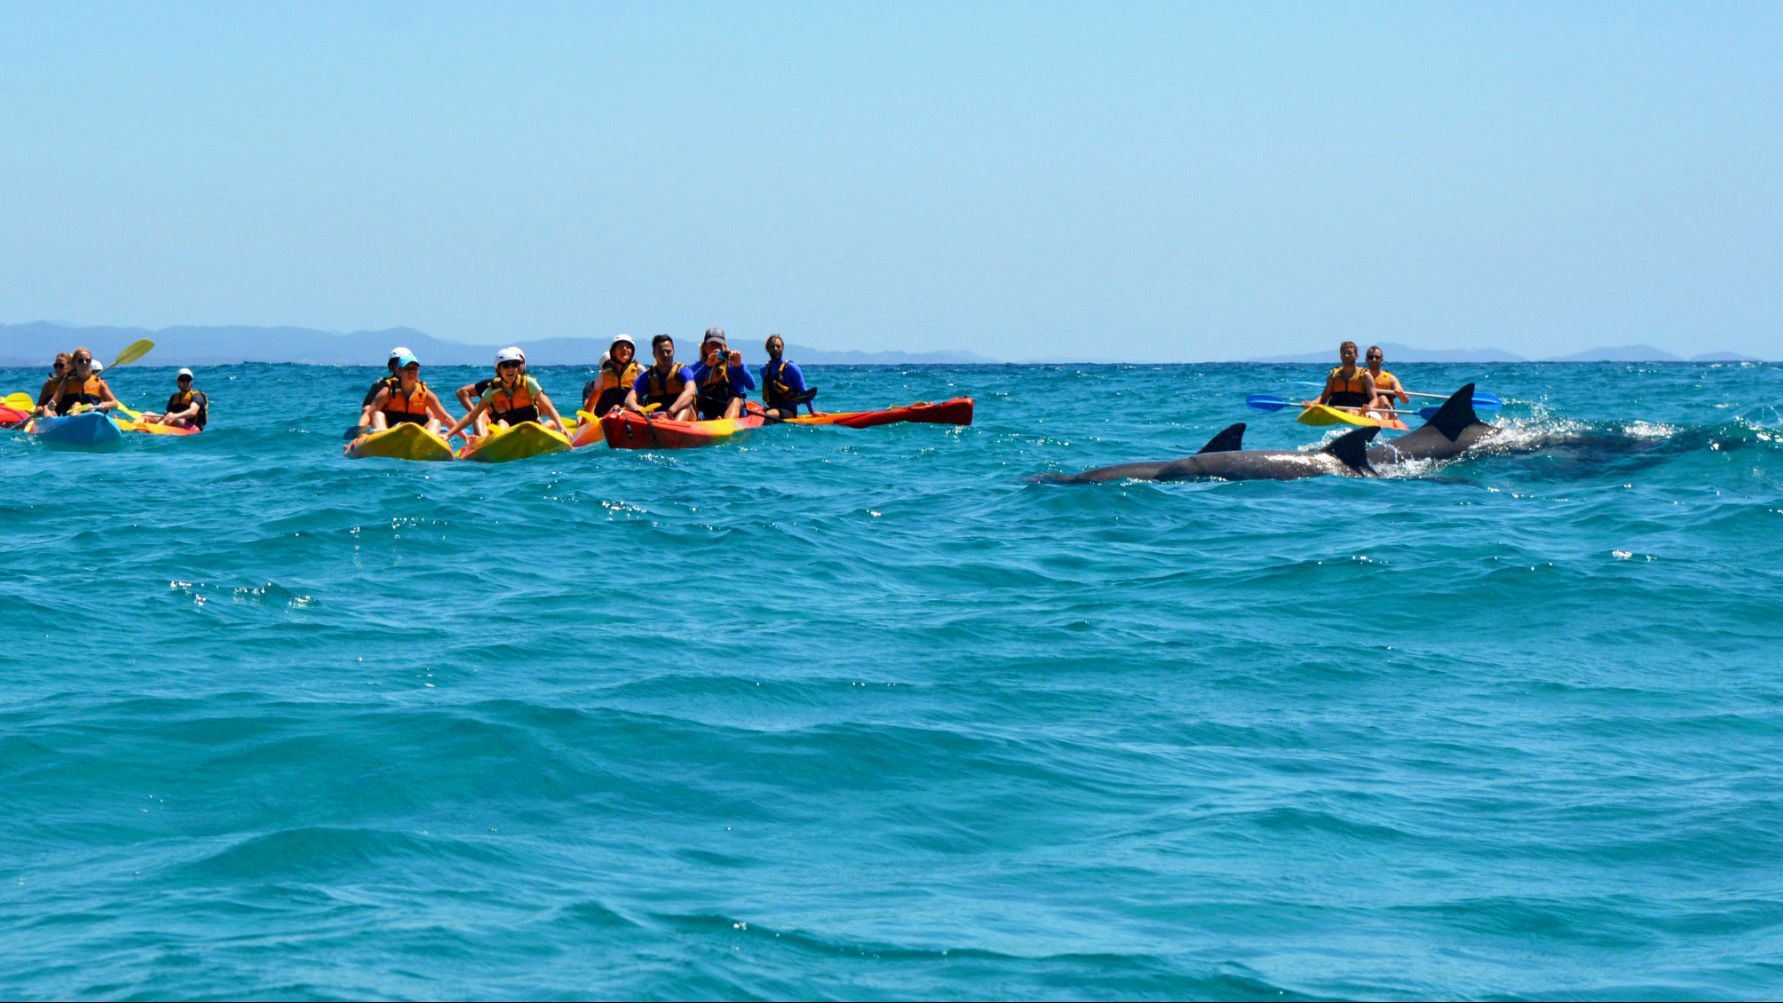 Kayaking group near dolphins in Byron Bay